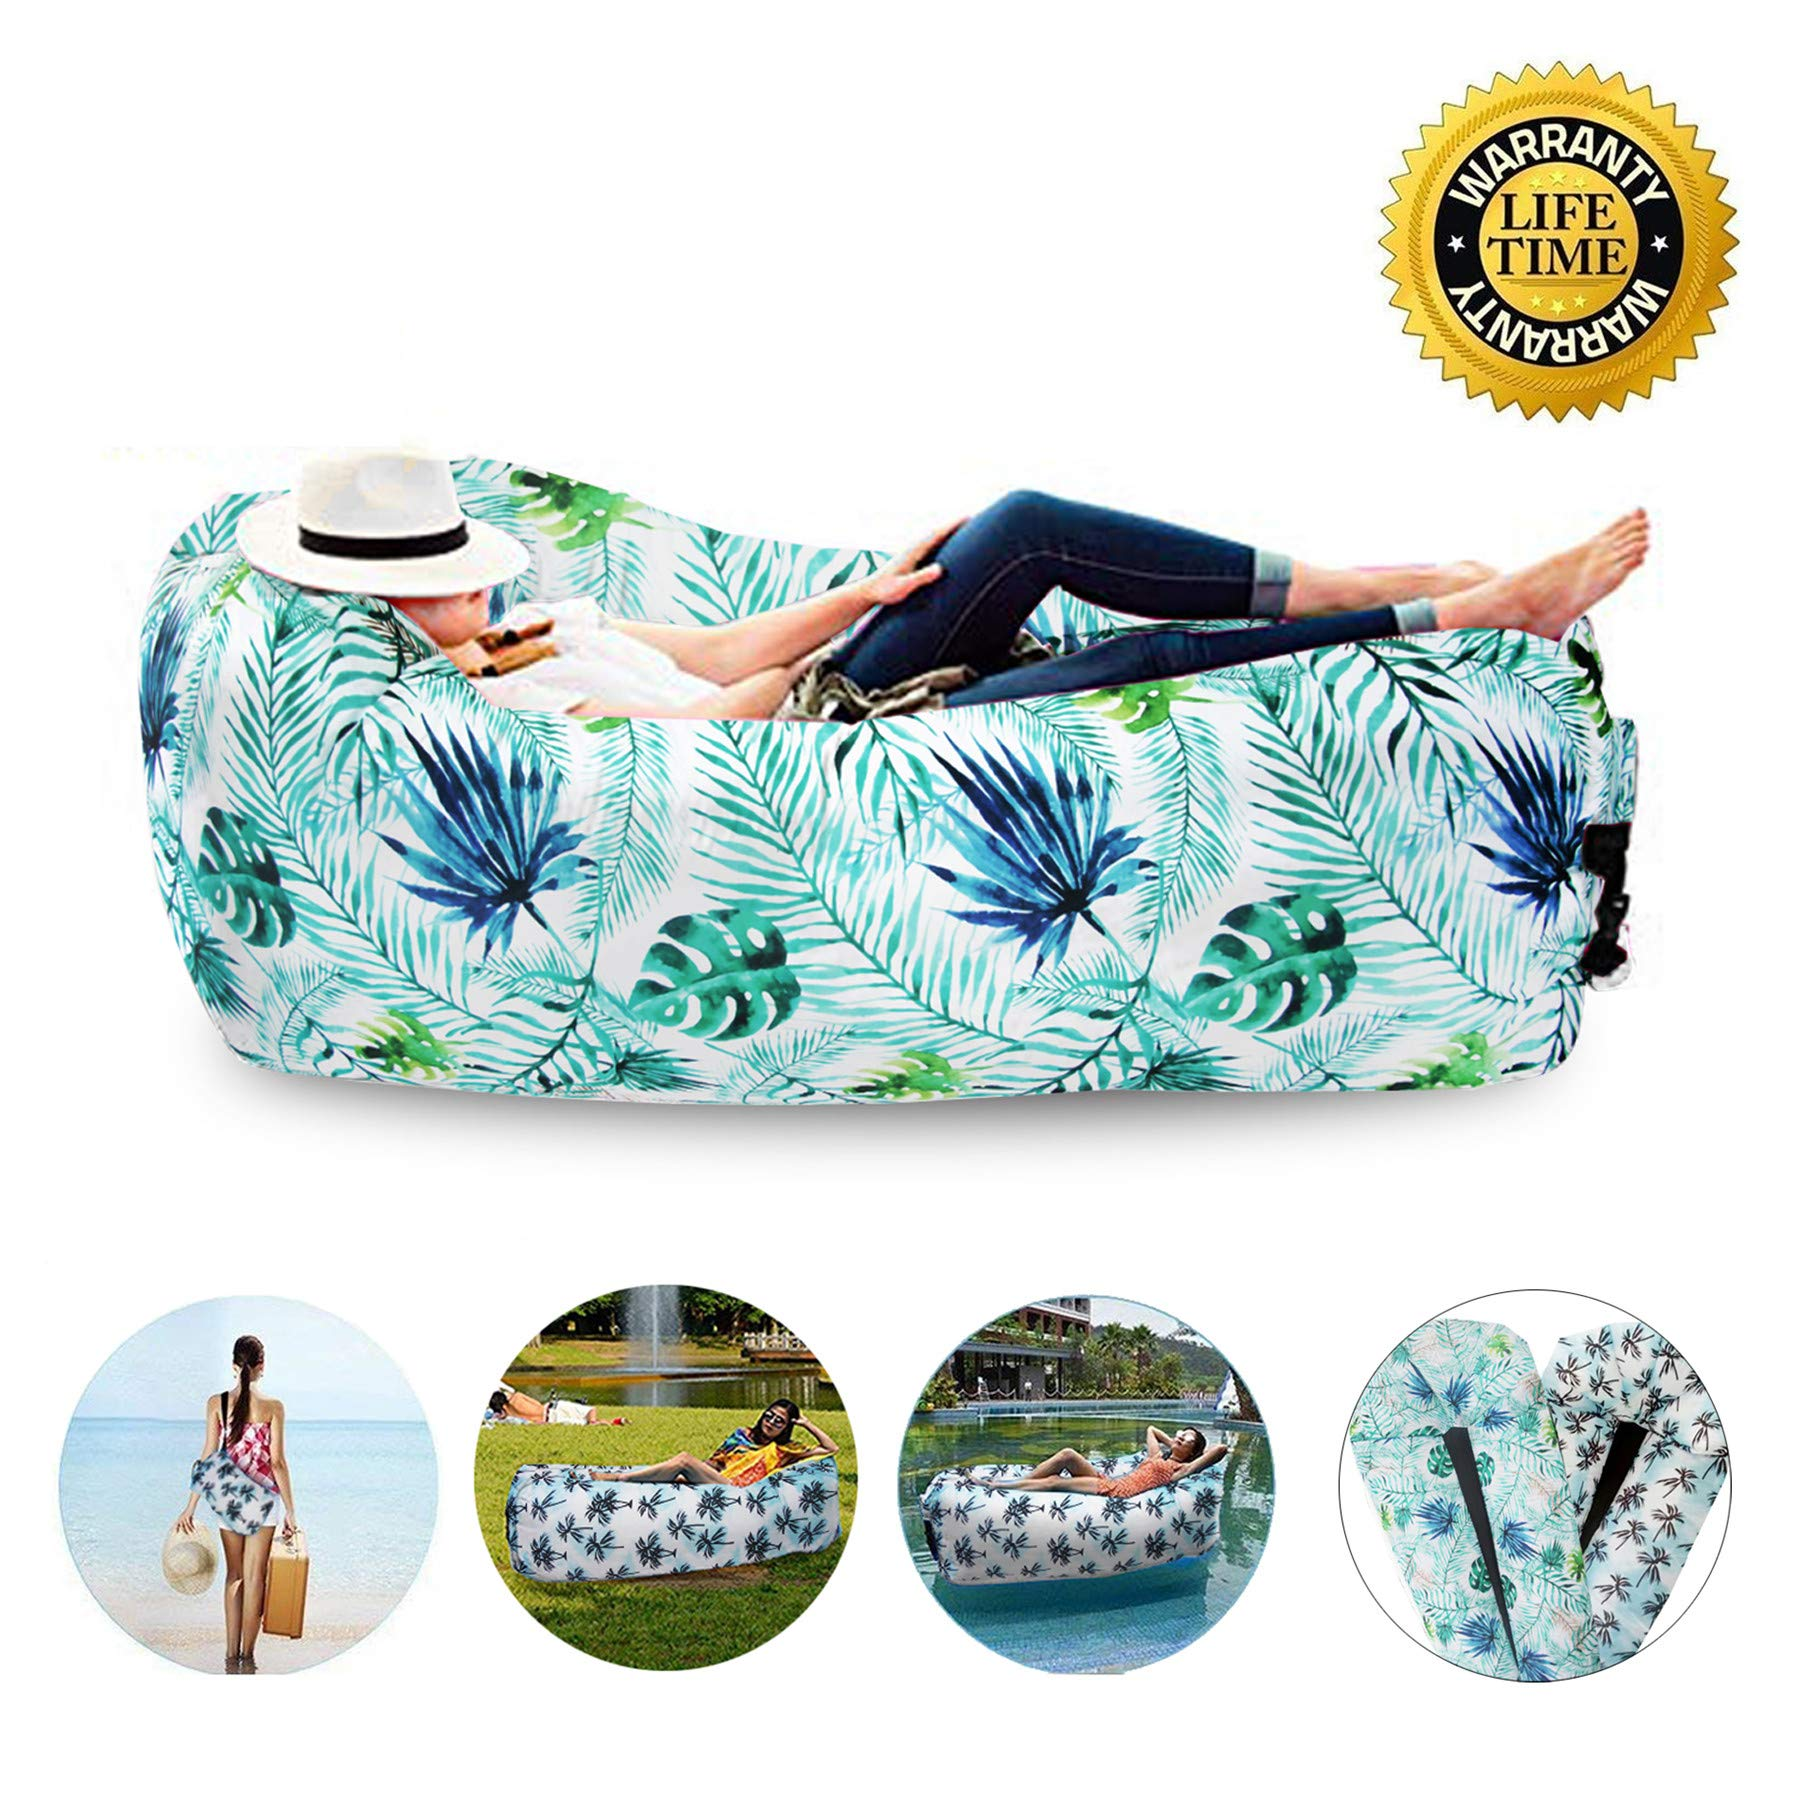 Deer Mum Air Chair Inflatable Sofa Couch Lounger Hommock Portable Picnic Outdoor Use Camping Beach Pool Float Sofa by Deer Mum